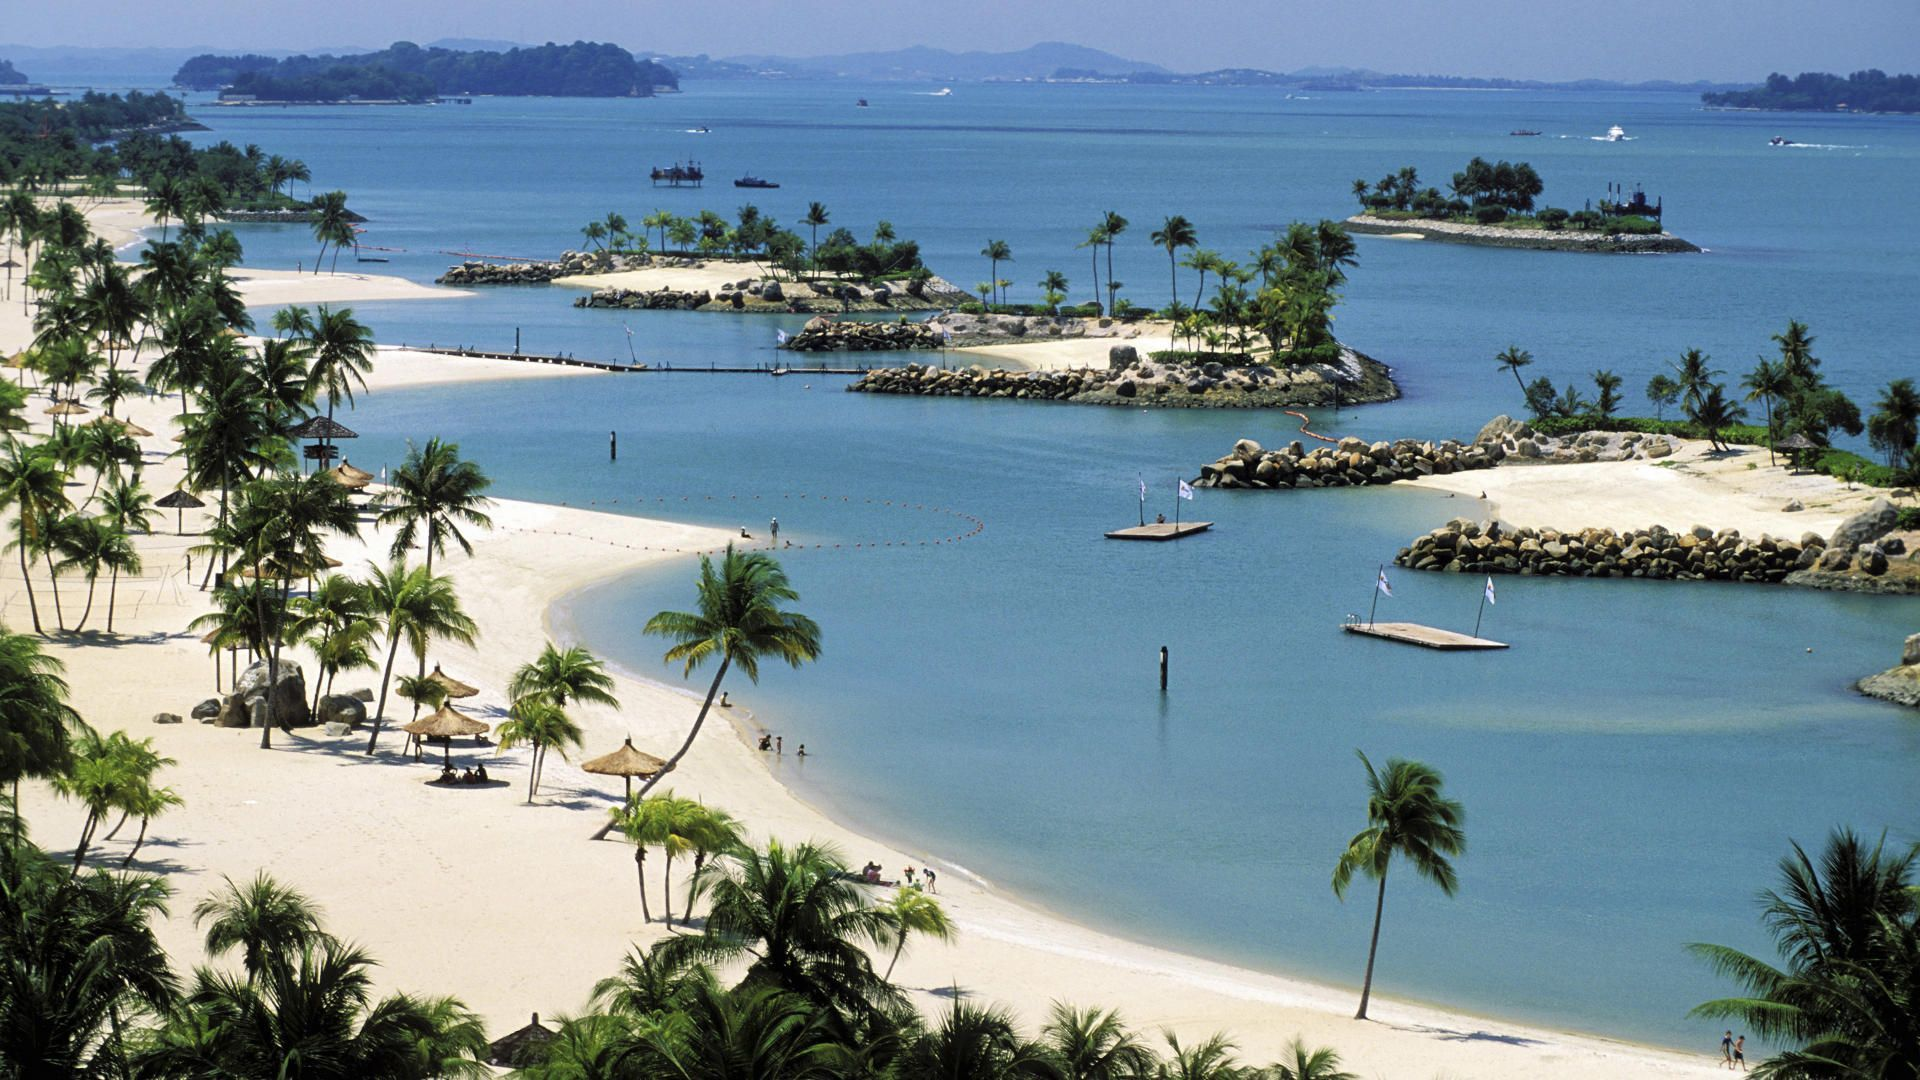 Sentosa Island Singapore Sentosa Island Singapore Jpg Singapore Travel Sentosa Island Singapore Beaches In The World